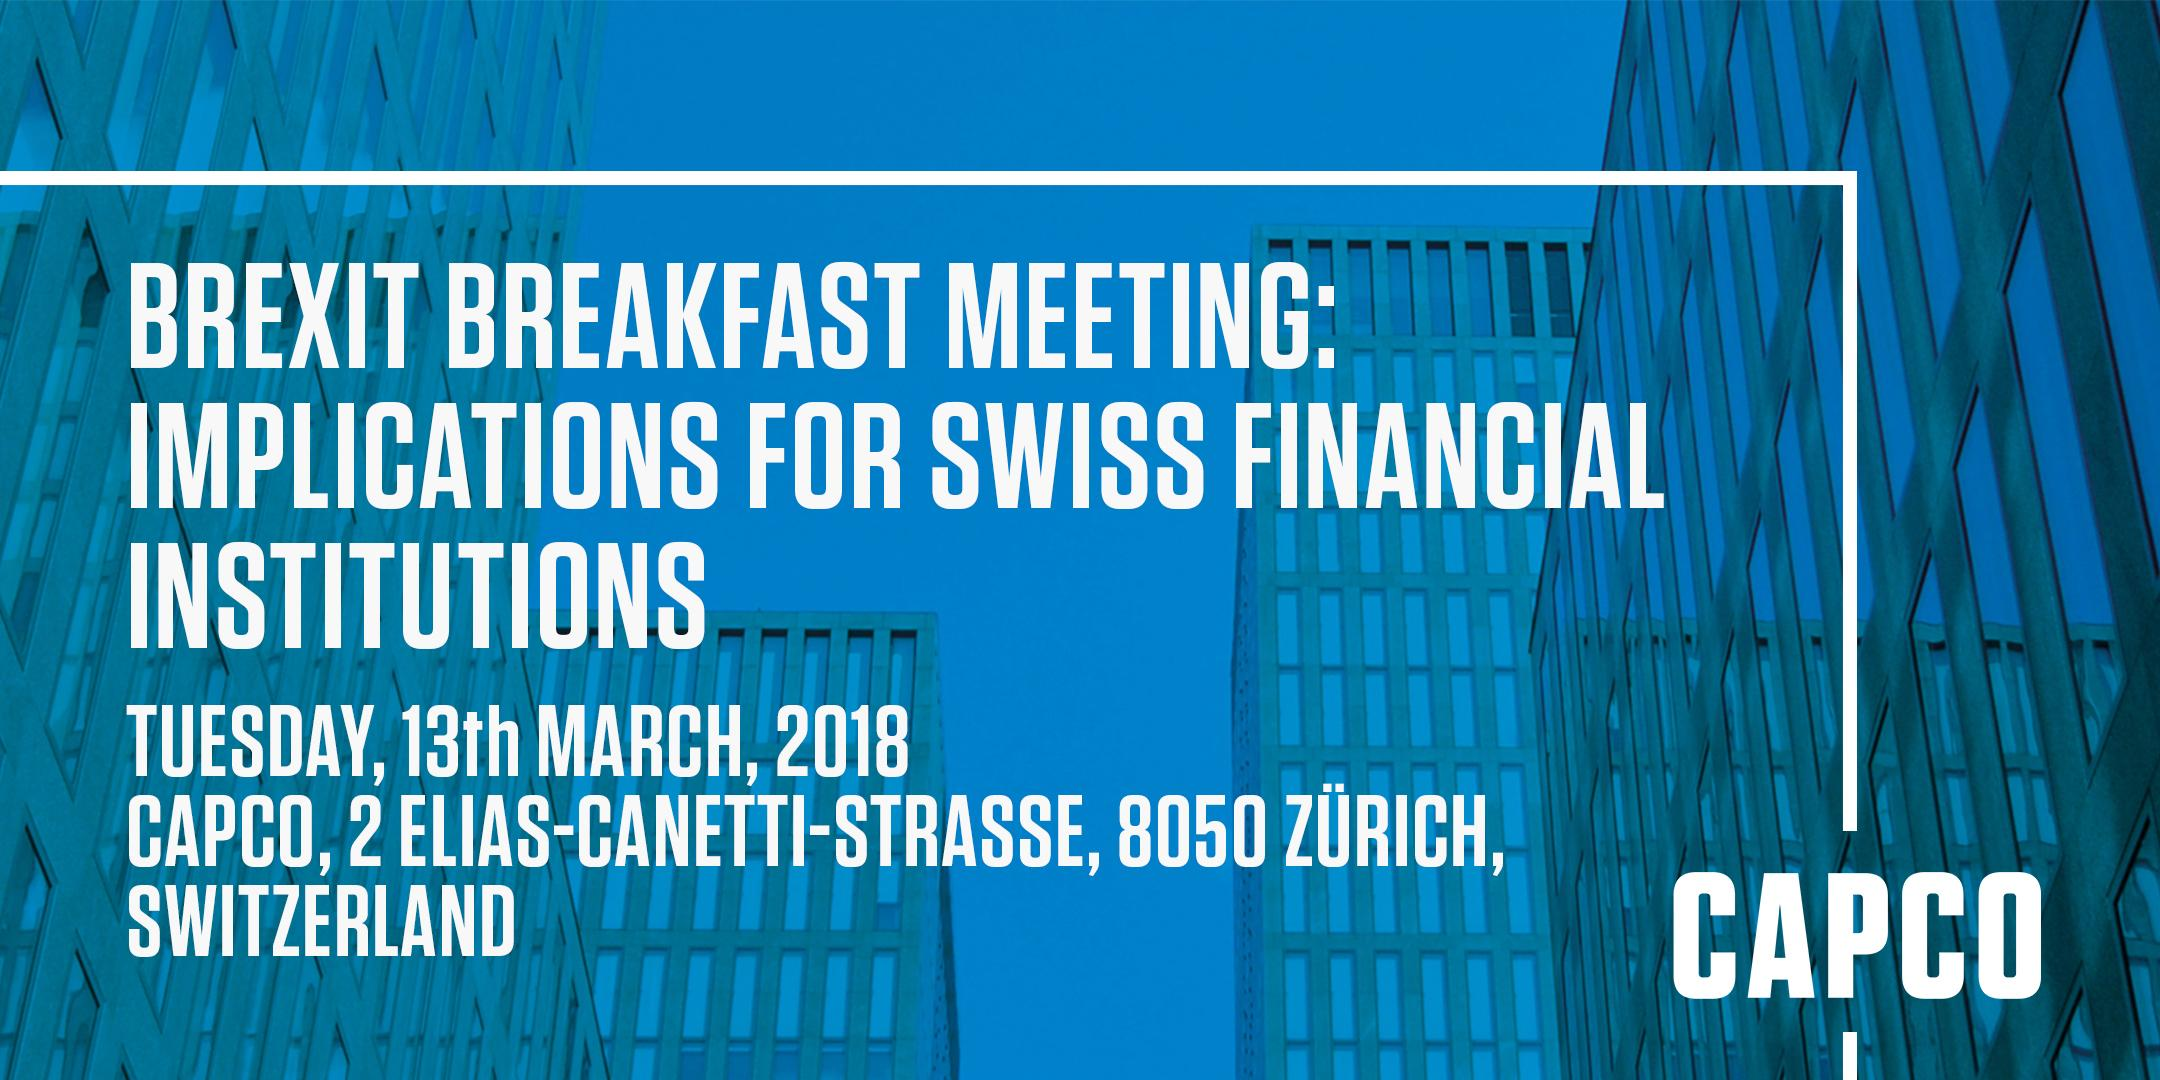 Brexit Breakfast Meeting: Implications for Swiss financial institutions